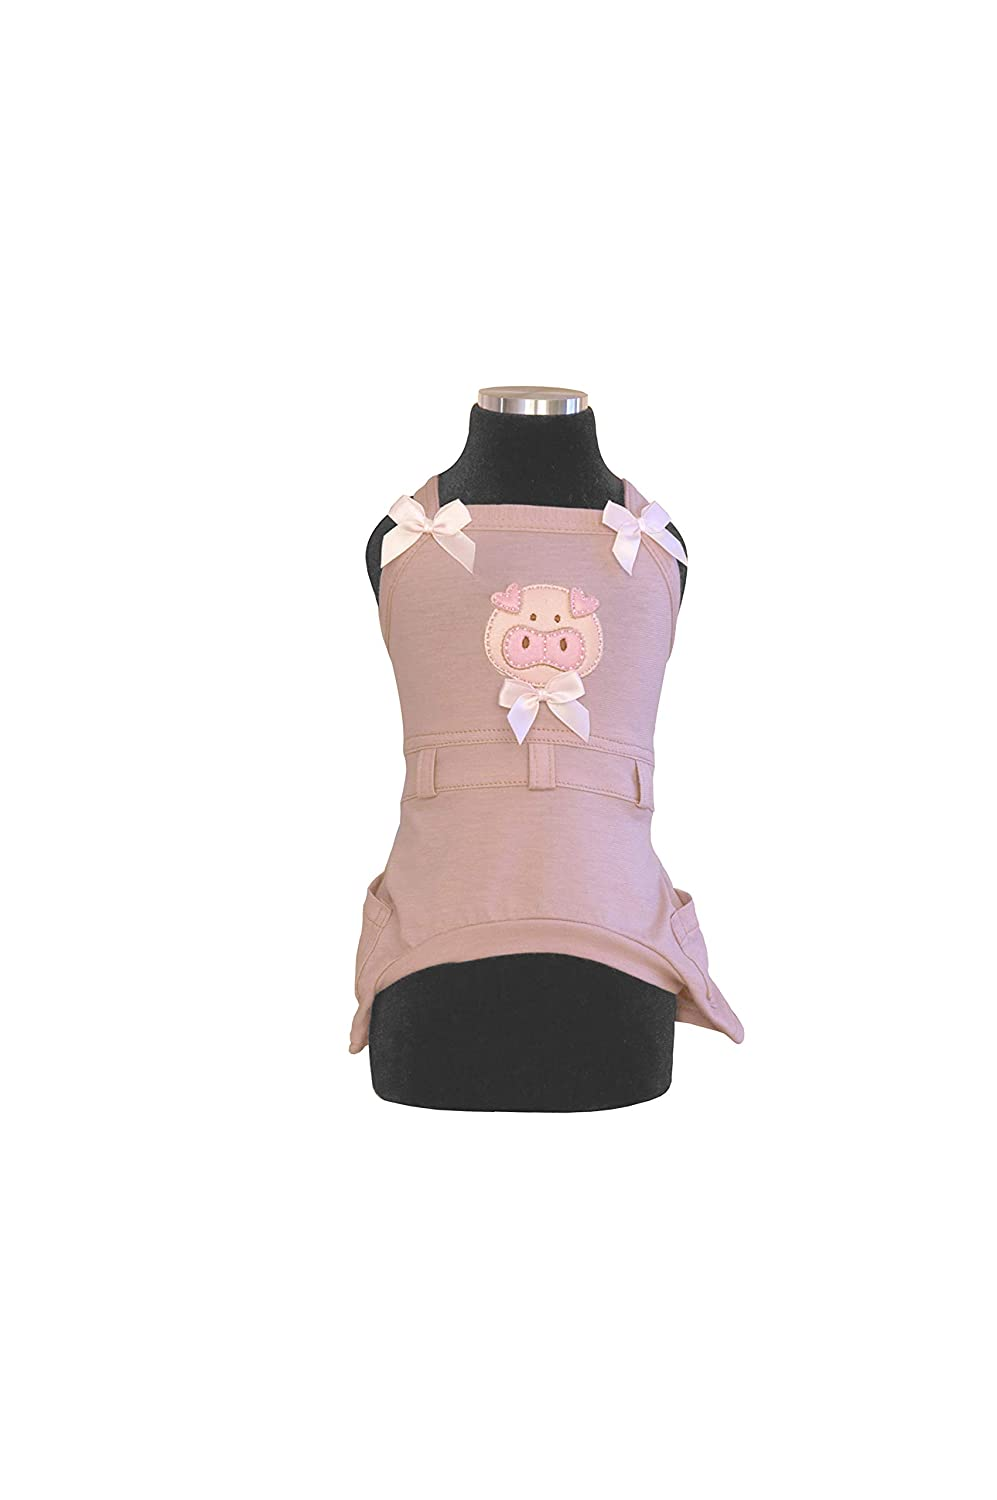 Trilly All Brilli Armida Dungarees Jersey Thermal Application Pig, Pink, XS